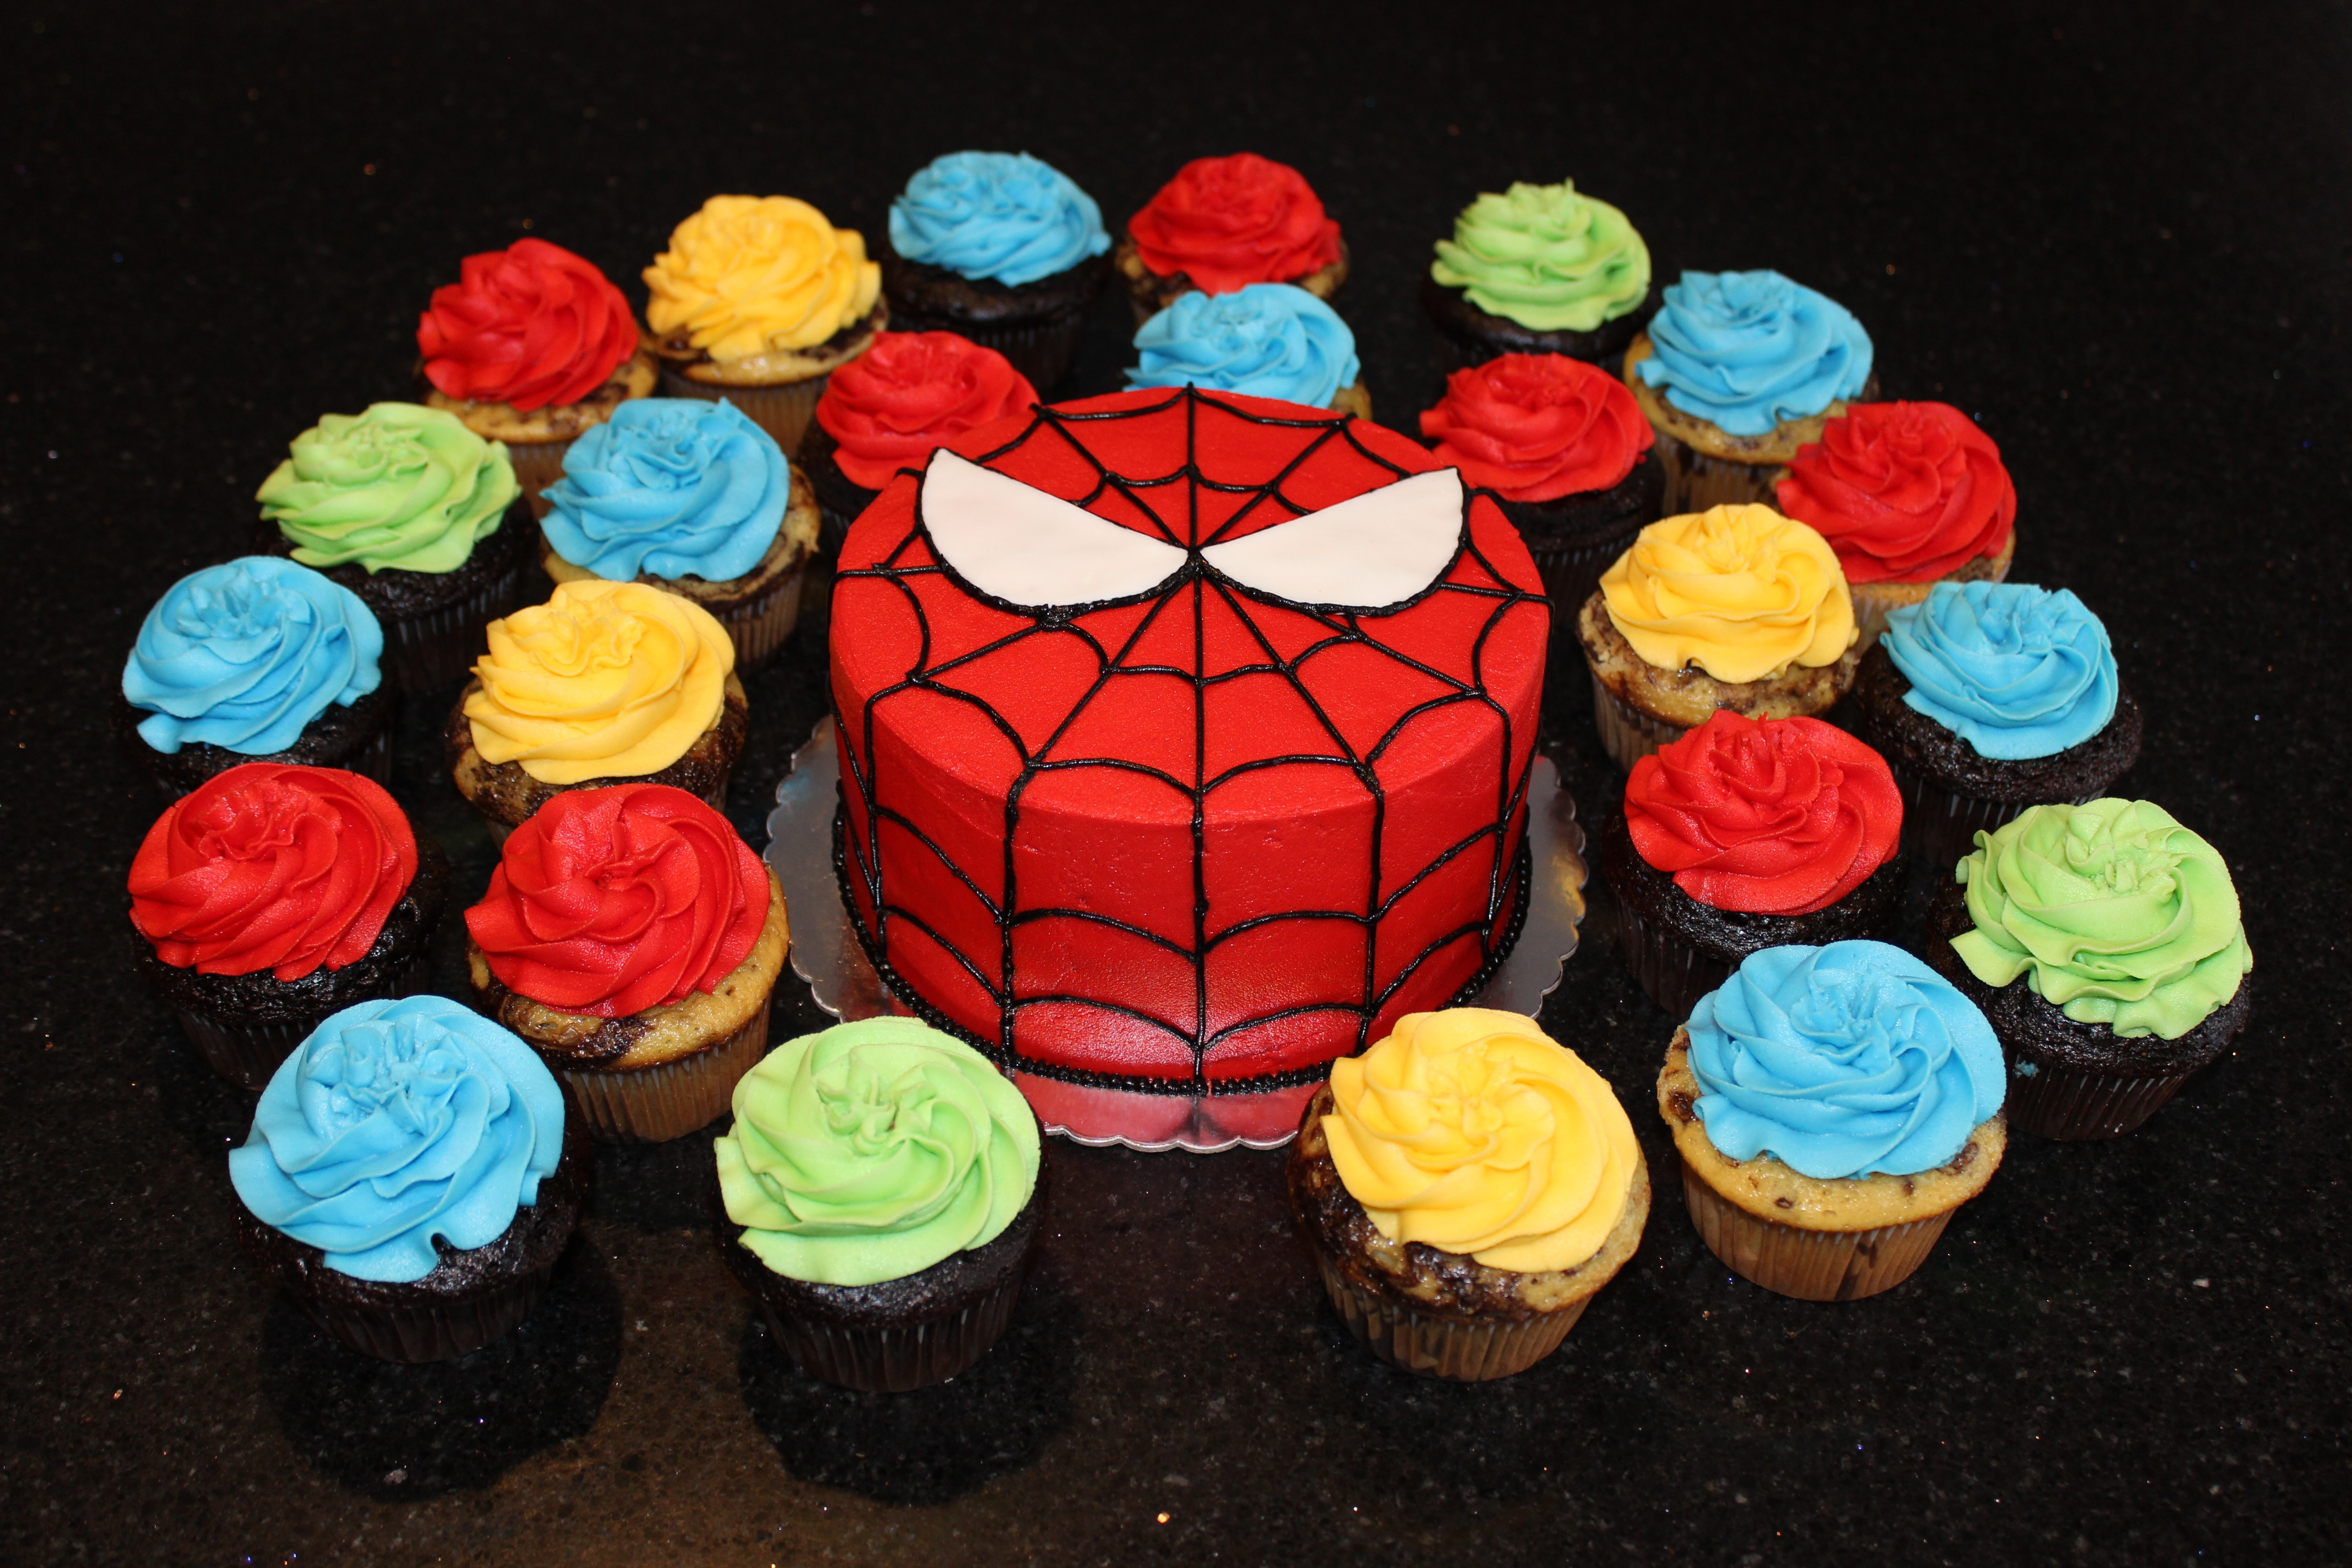 Spiderman Cake with Cupcakes